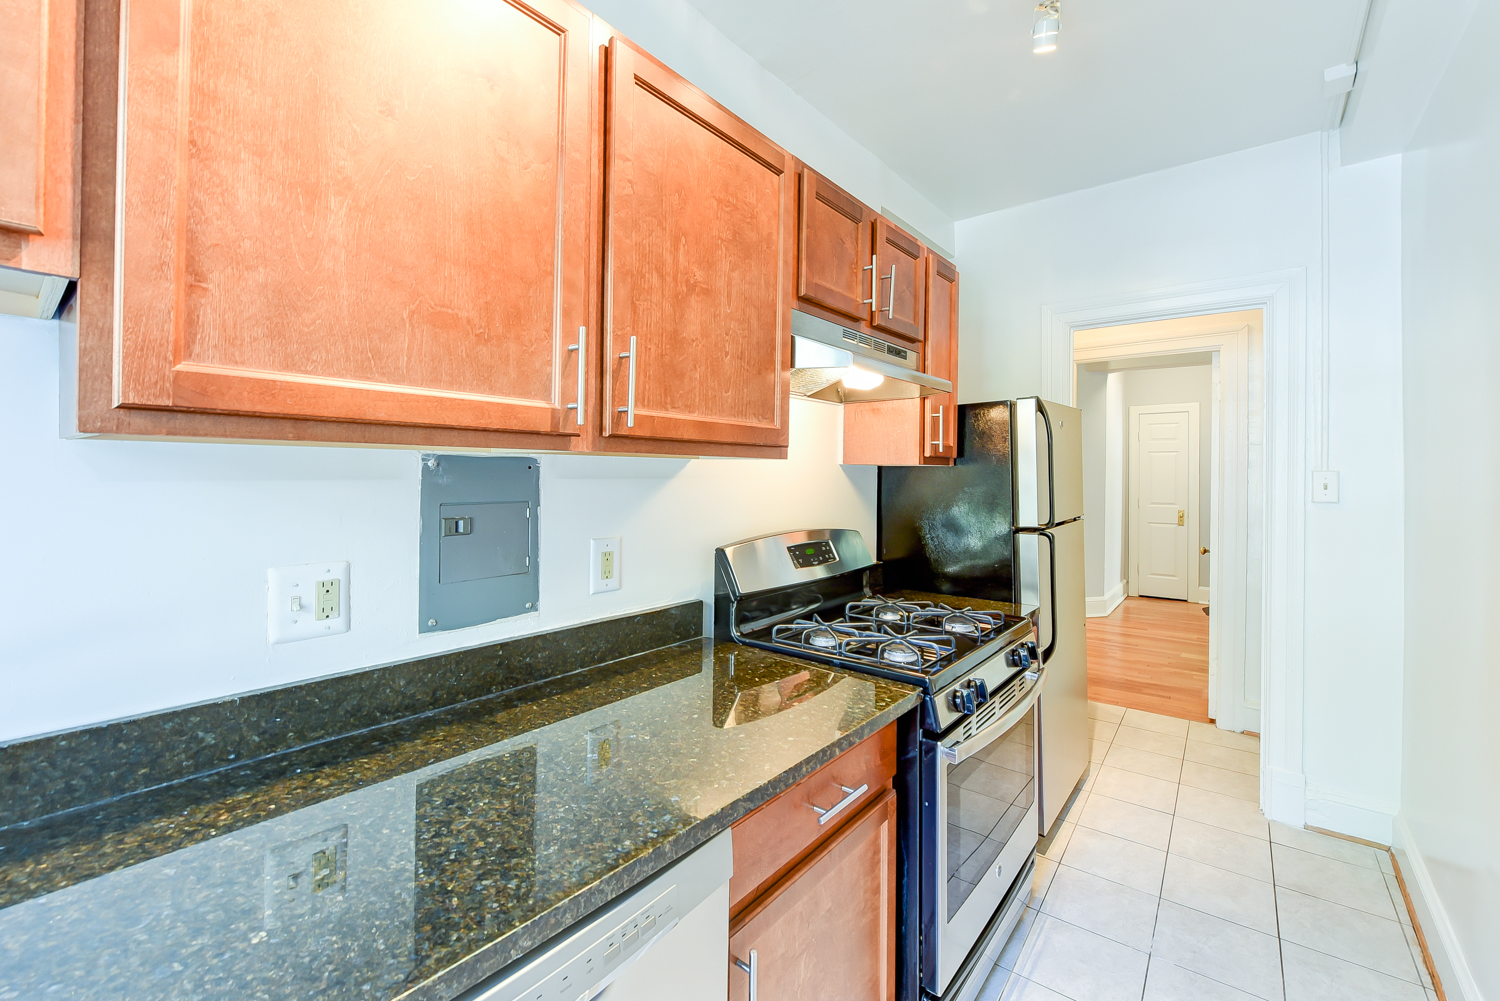 The Shawmut-Ktichen-Cabinets-Countertops-DC-Apartment-Rentals